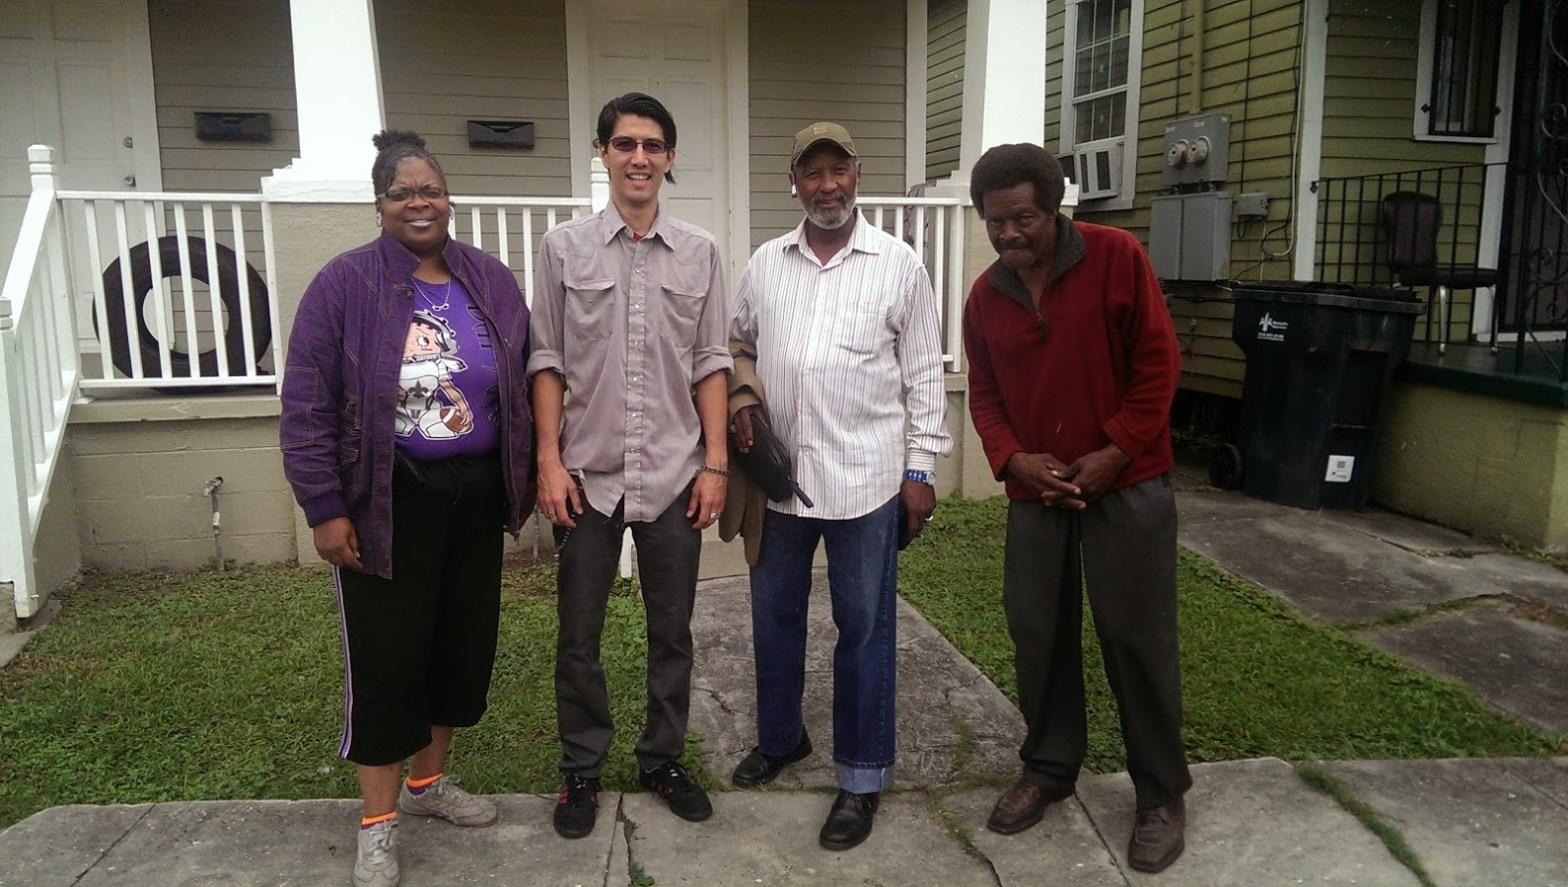 Pam Collins, Anthony DelRosario, Tom White, and Lester Carey